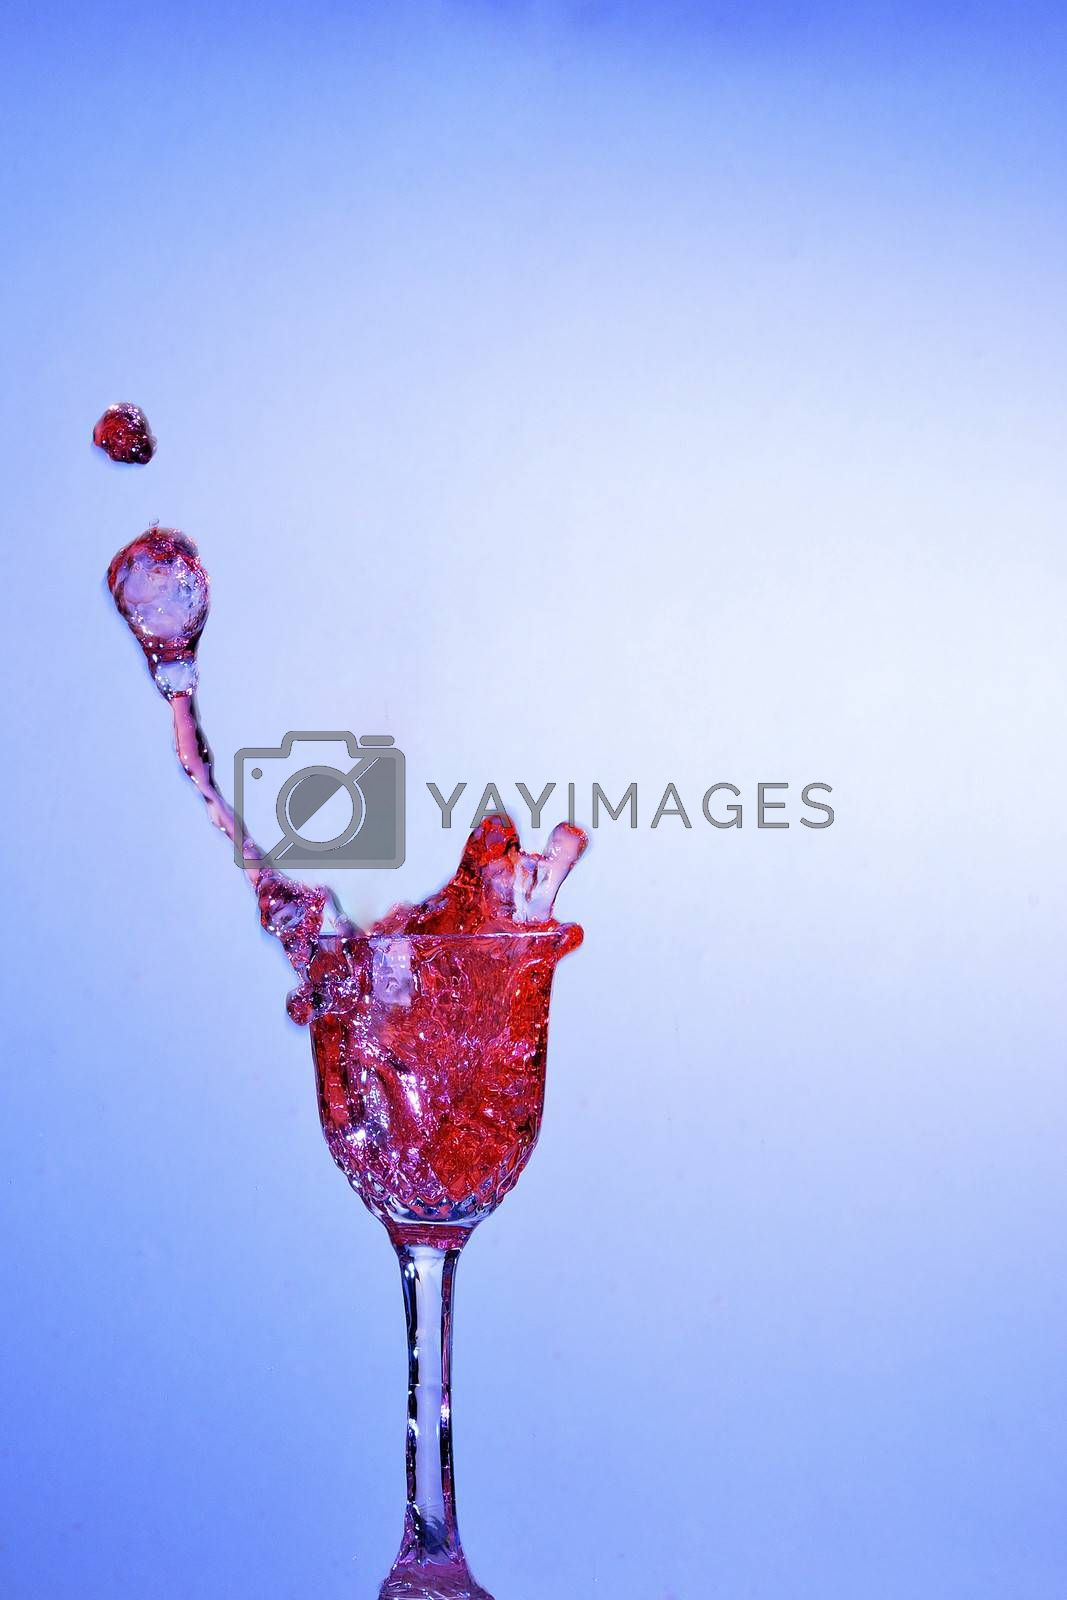 red liquid bubbling in a small glass with blue background